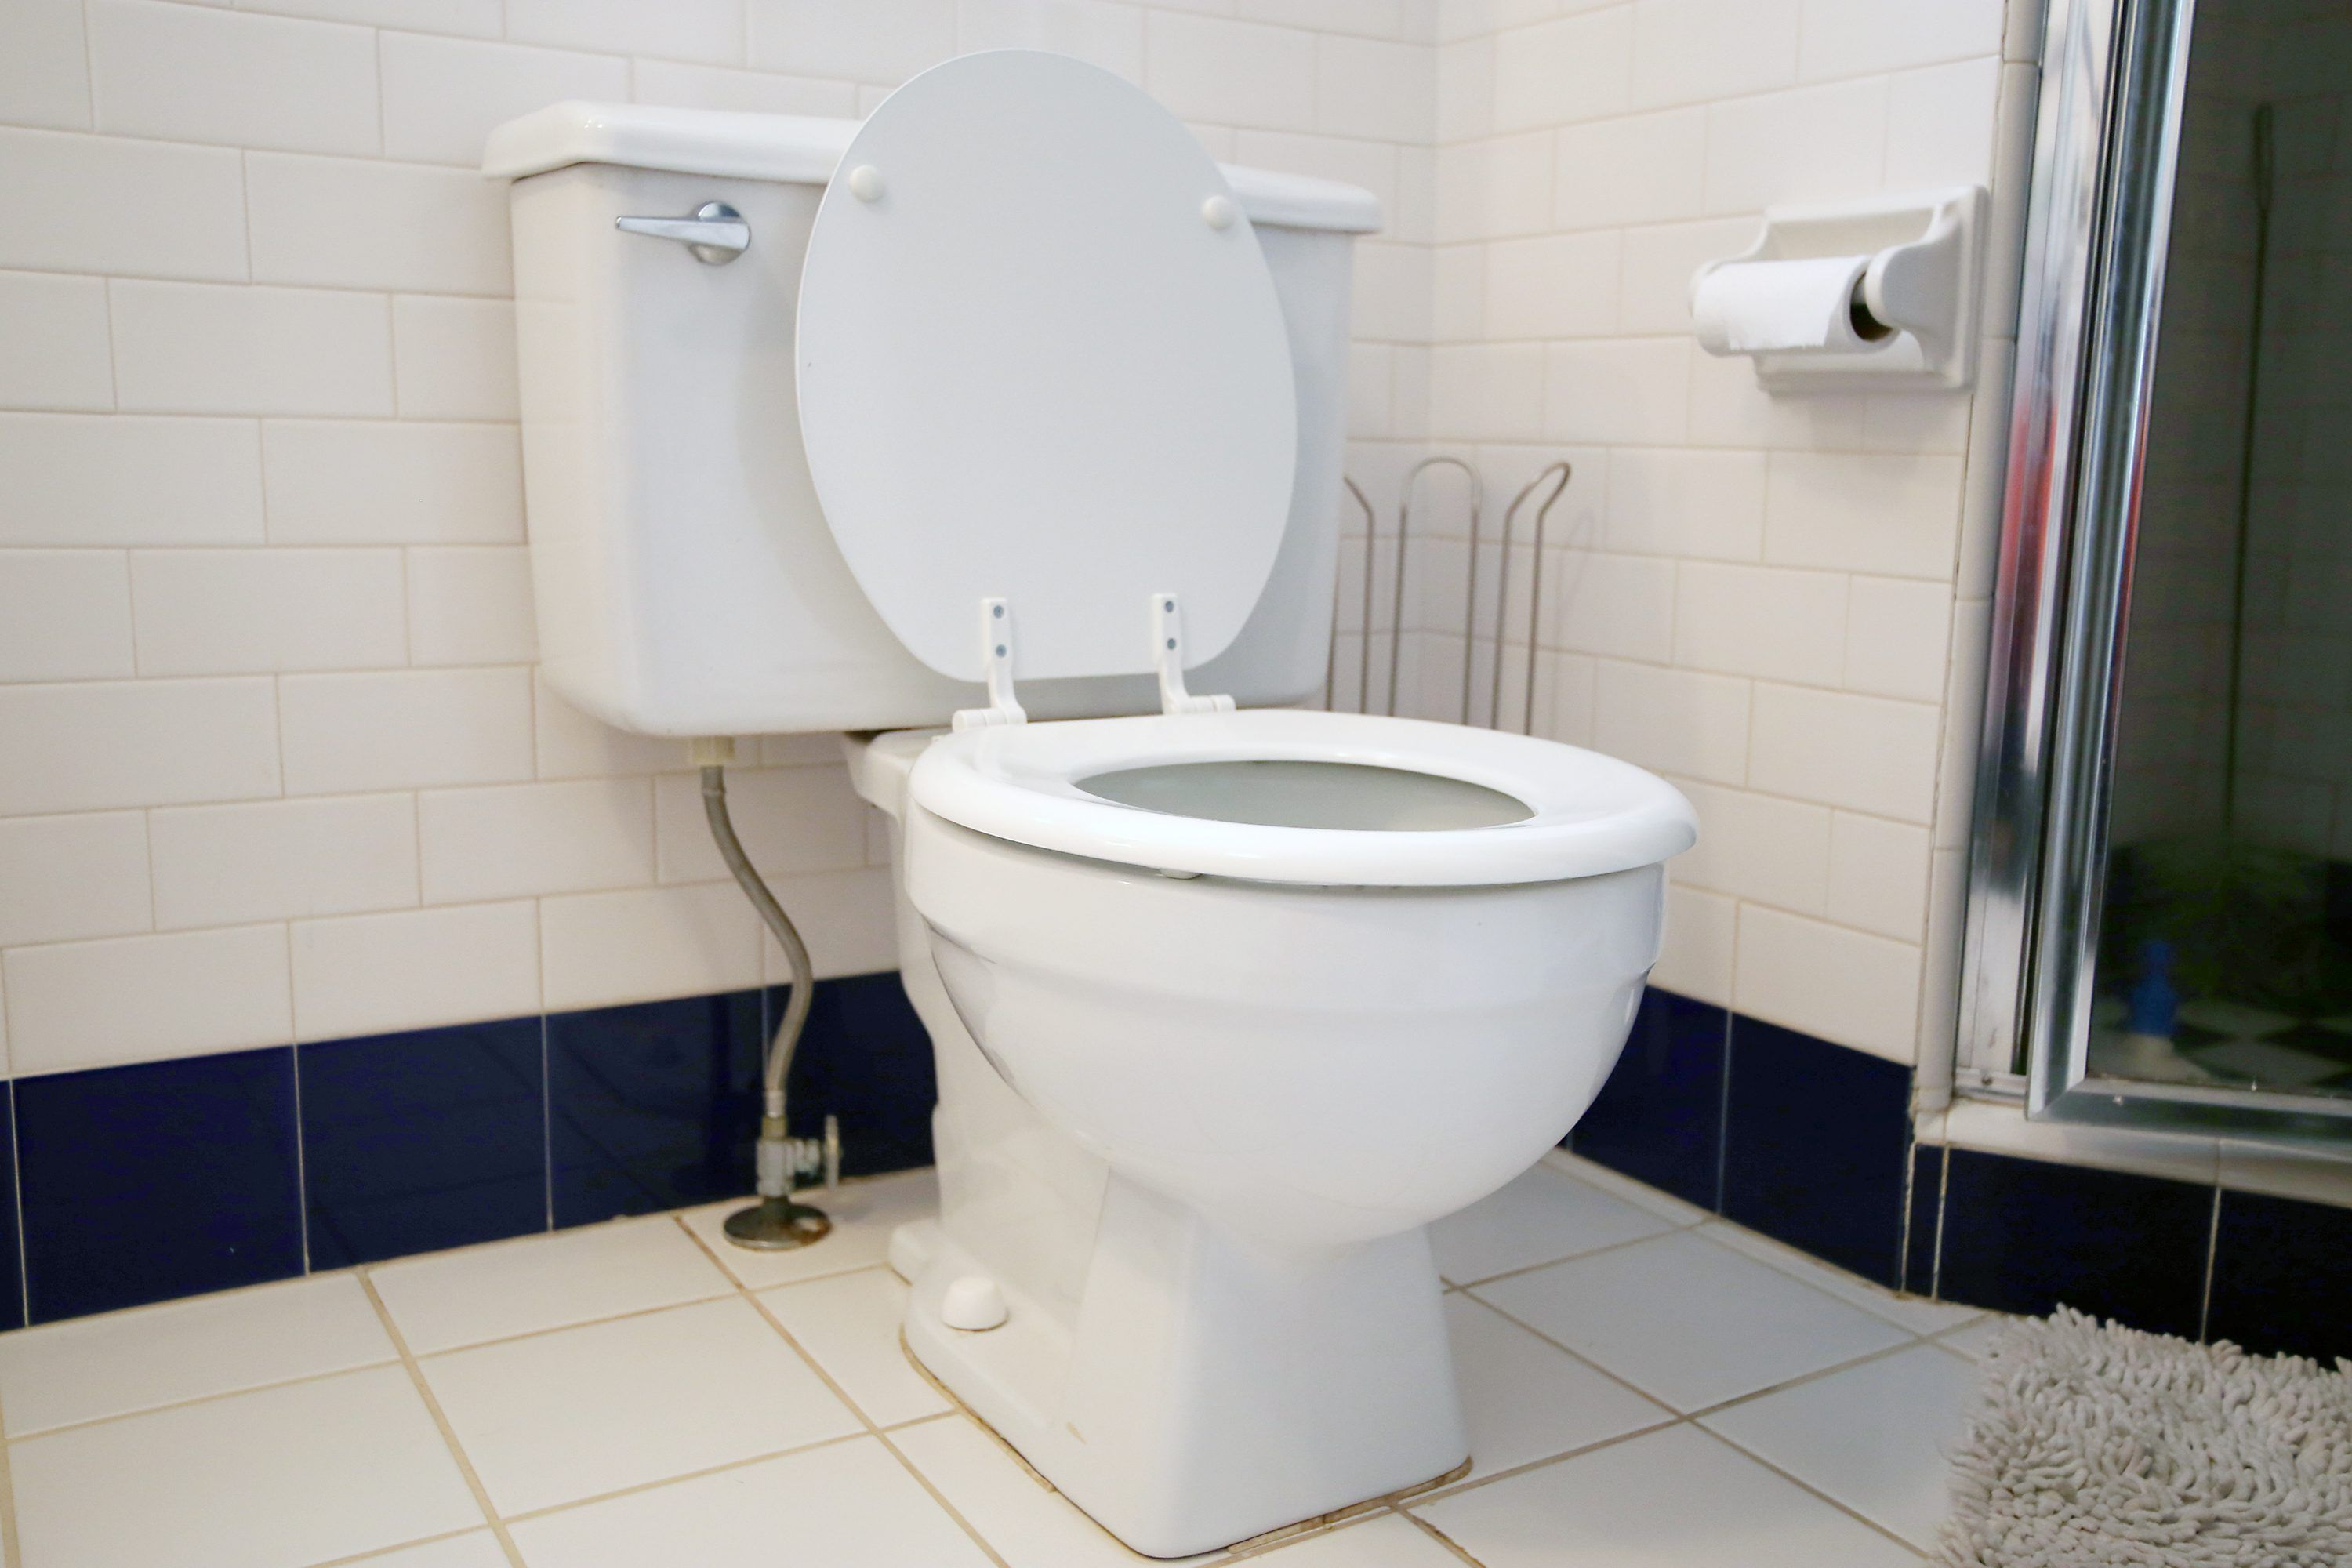 How To Get Rid Of A Sewer Smell In A Bathroom Sewer Smells In Bathrooms Can Be A Serious Problem Not J Sewer Gas Smell Sewer Smell In Bathroom Bathroom Drain